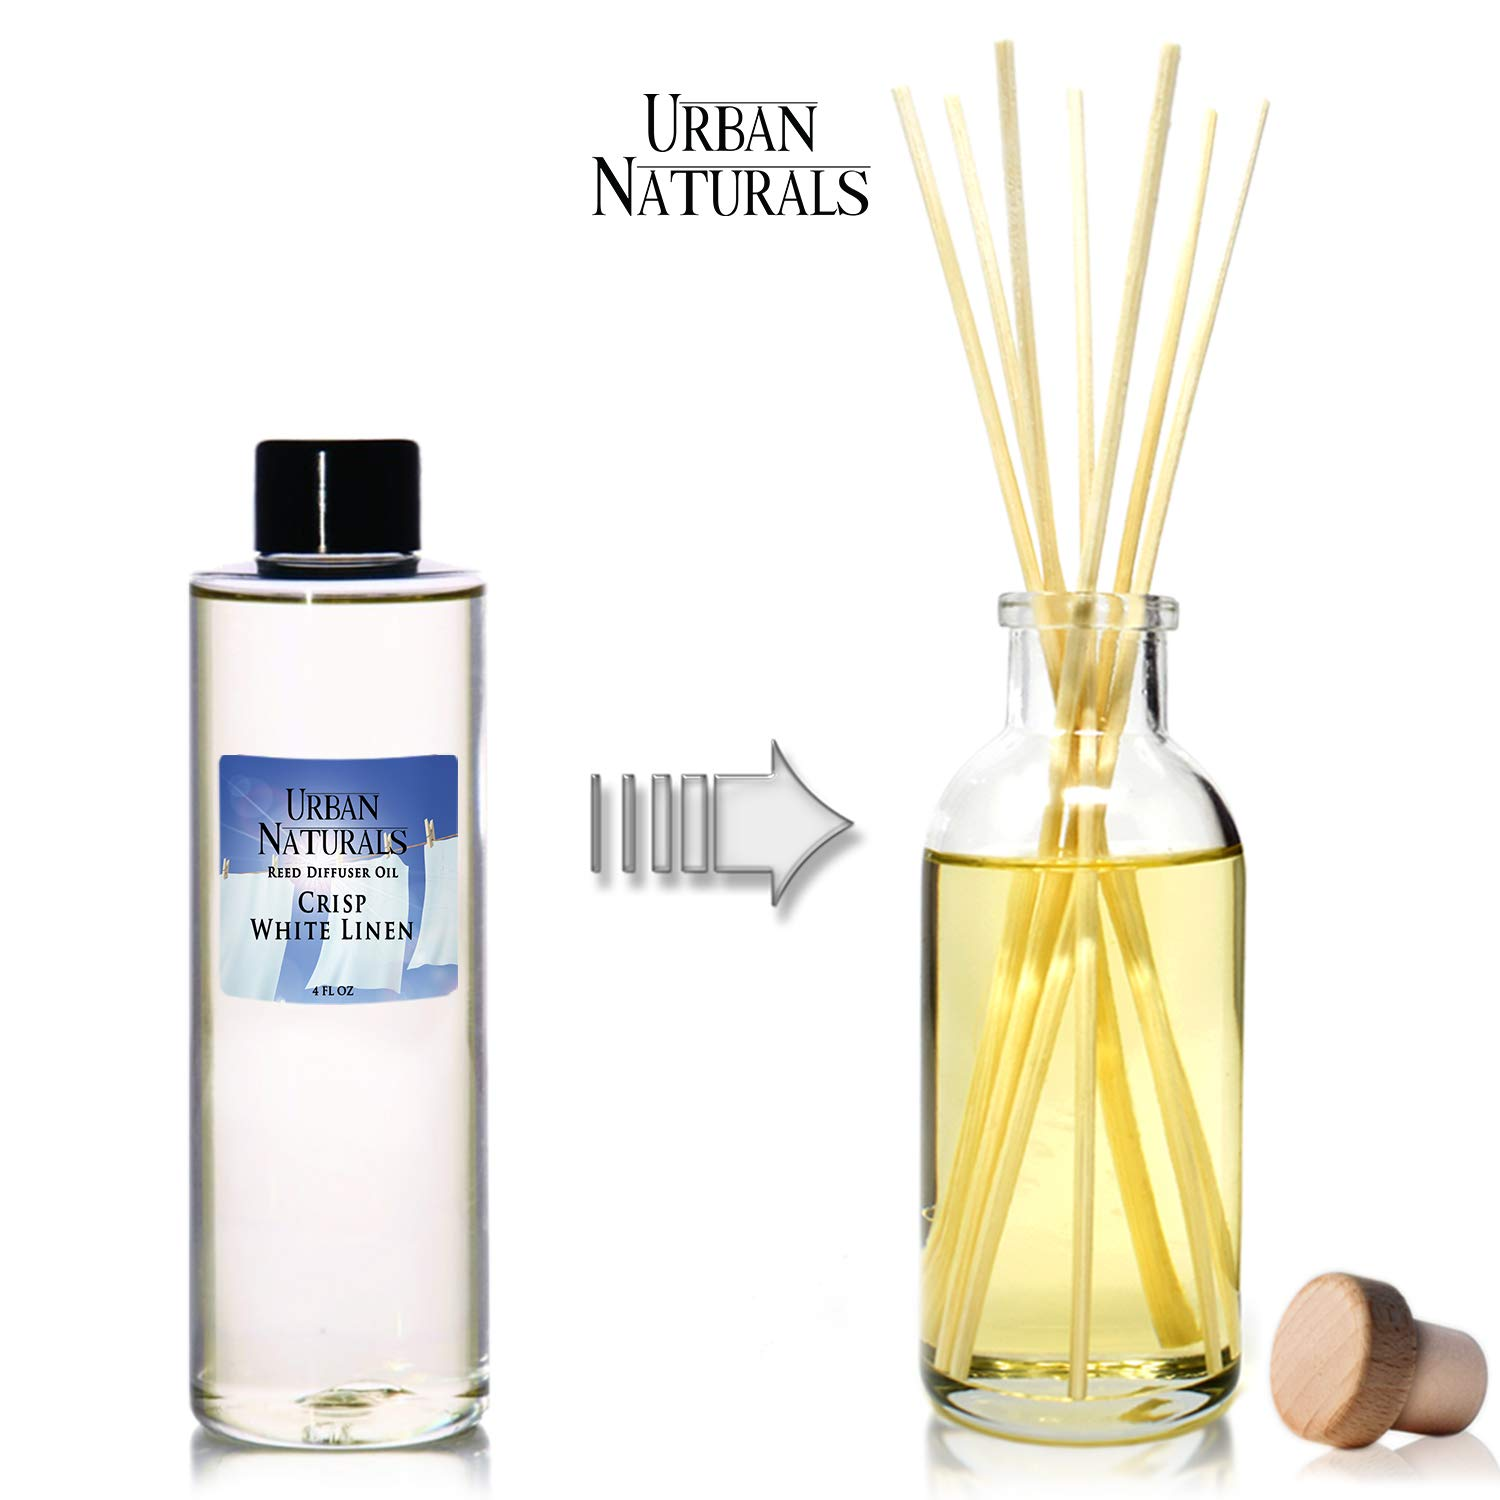 Urban Naturals Crisp White Linen Scented Oil Reed Diffuser Refill | Free Set of Reed Sticks! A Fresh, Clean Cotton Scent, 4 oz by Urban Naturals (Image #2)